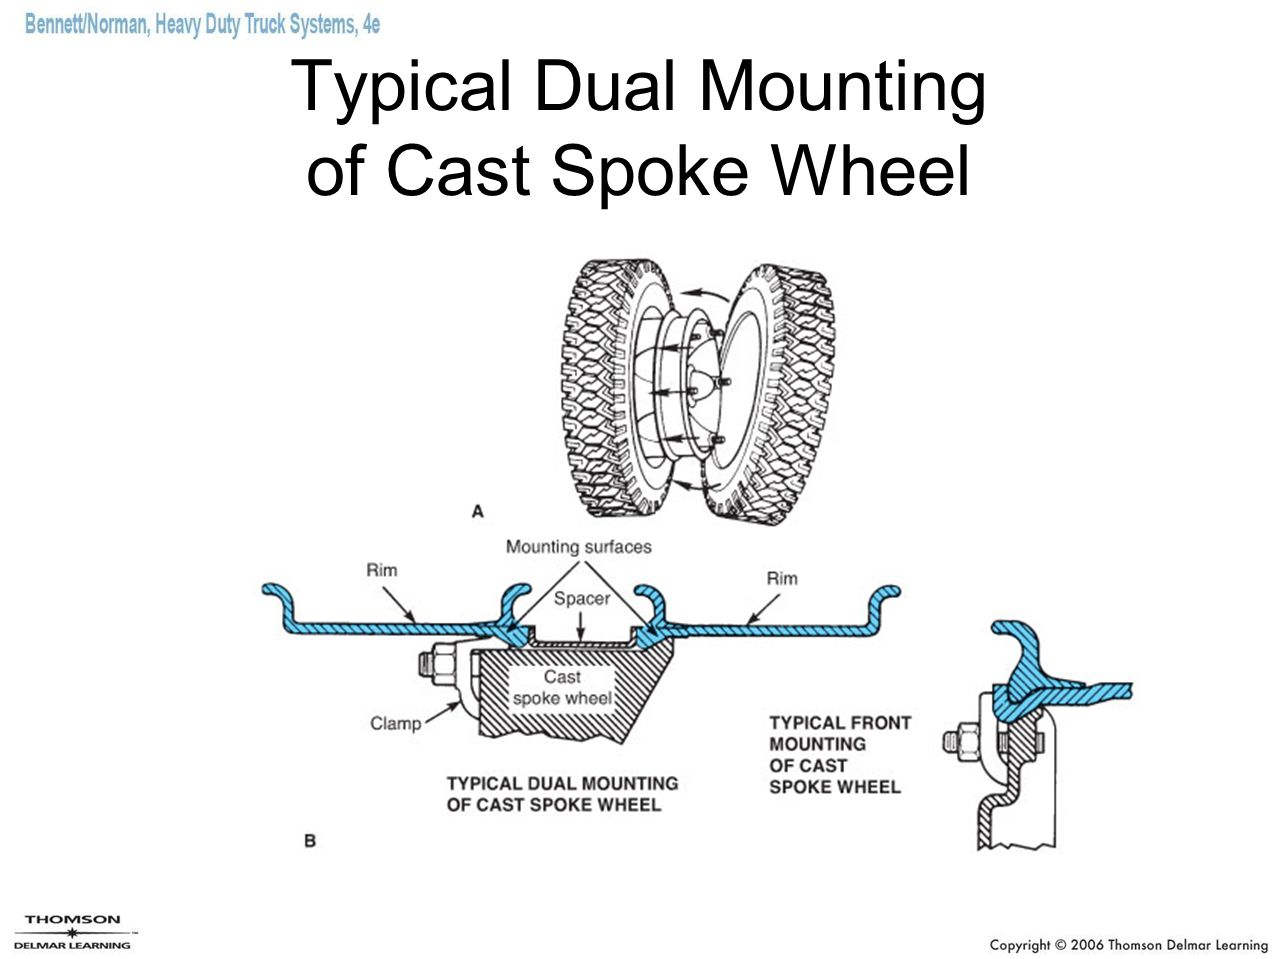 Typical Dual Mounting of Cast Spoke Wheel